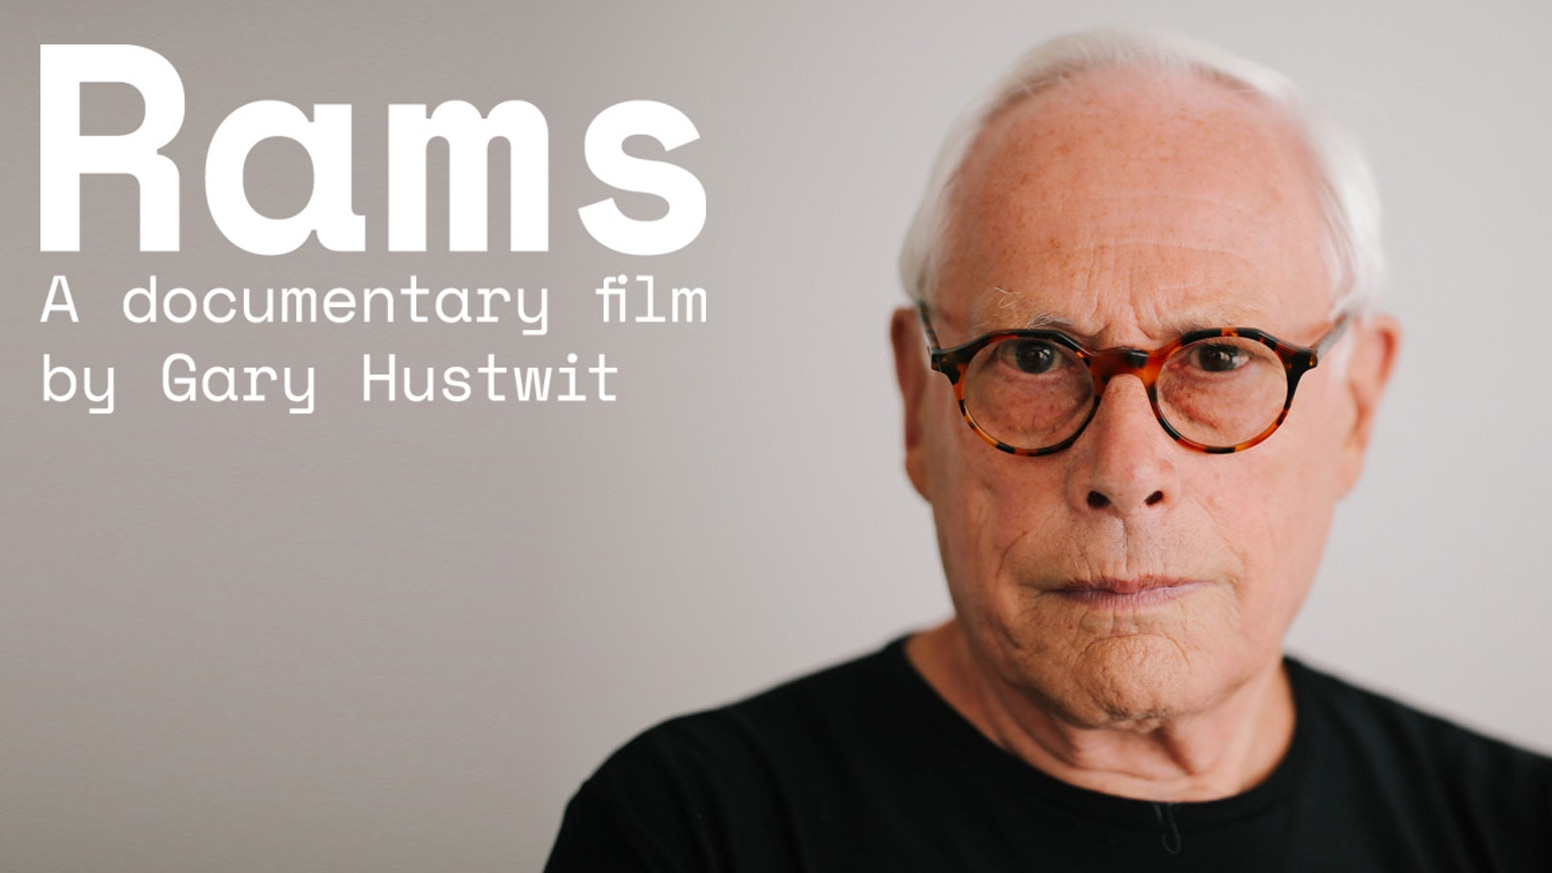 Join me in making the world's first feature documentary on legendary designer Dieter Rams, and in helping preserve his design archive.